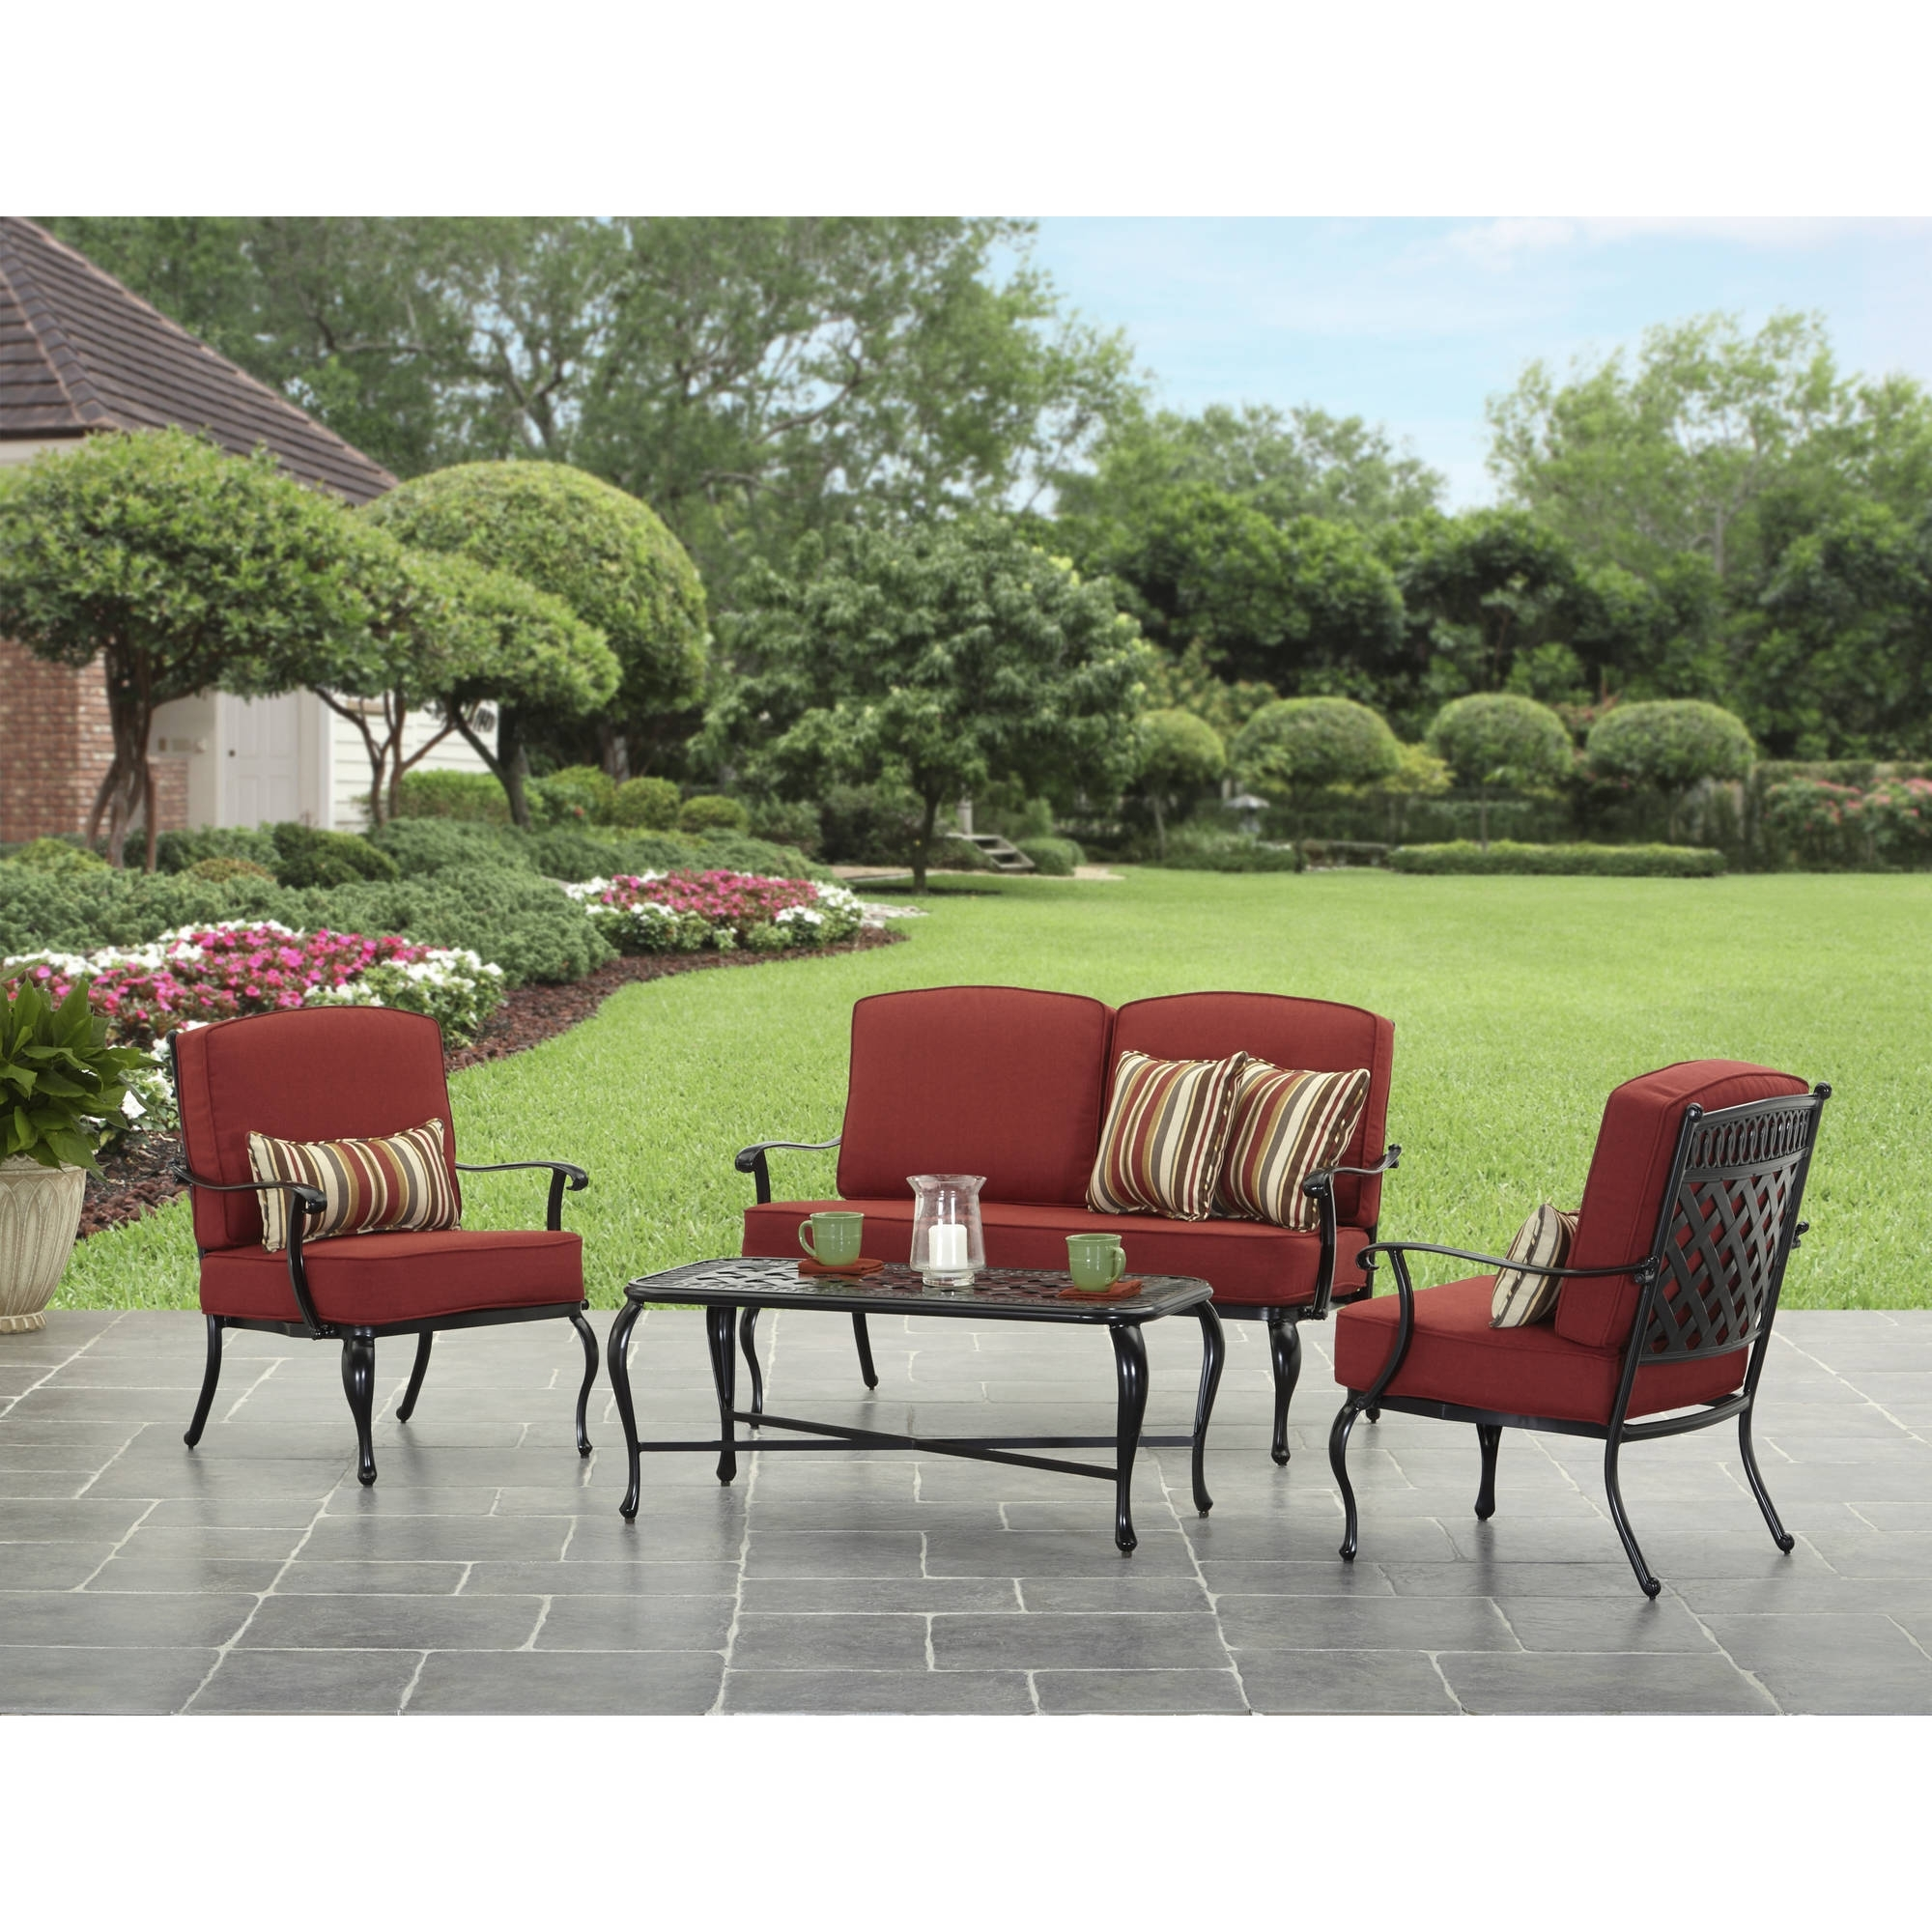 Better Homes And Garden Dawn Hill 4 Piece Outdoor Conversation Set In Famous Walmart Patio Furniture Conversation Sets (View 4 of 15)